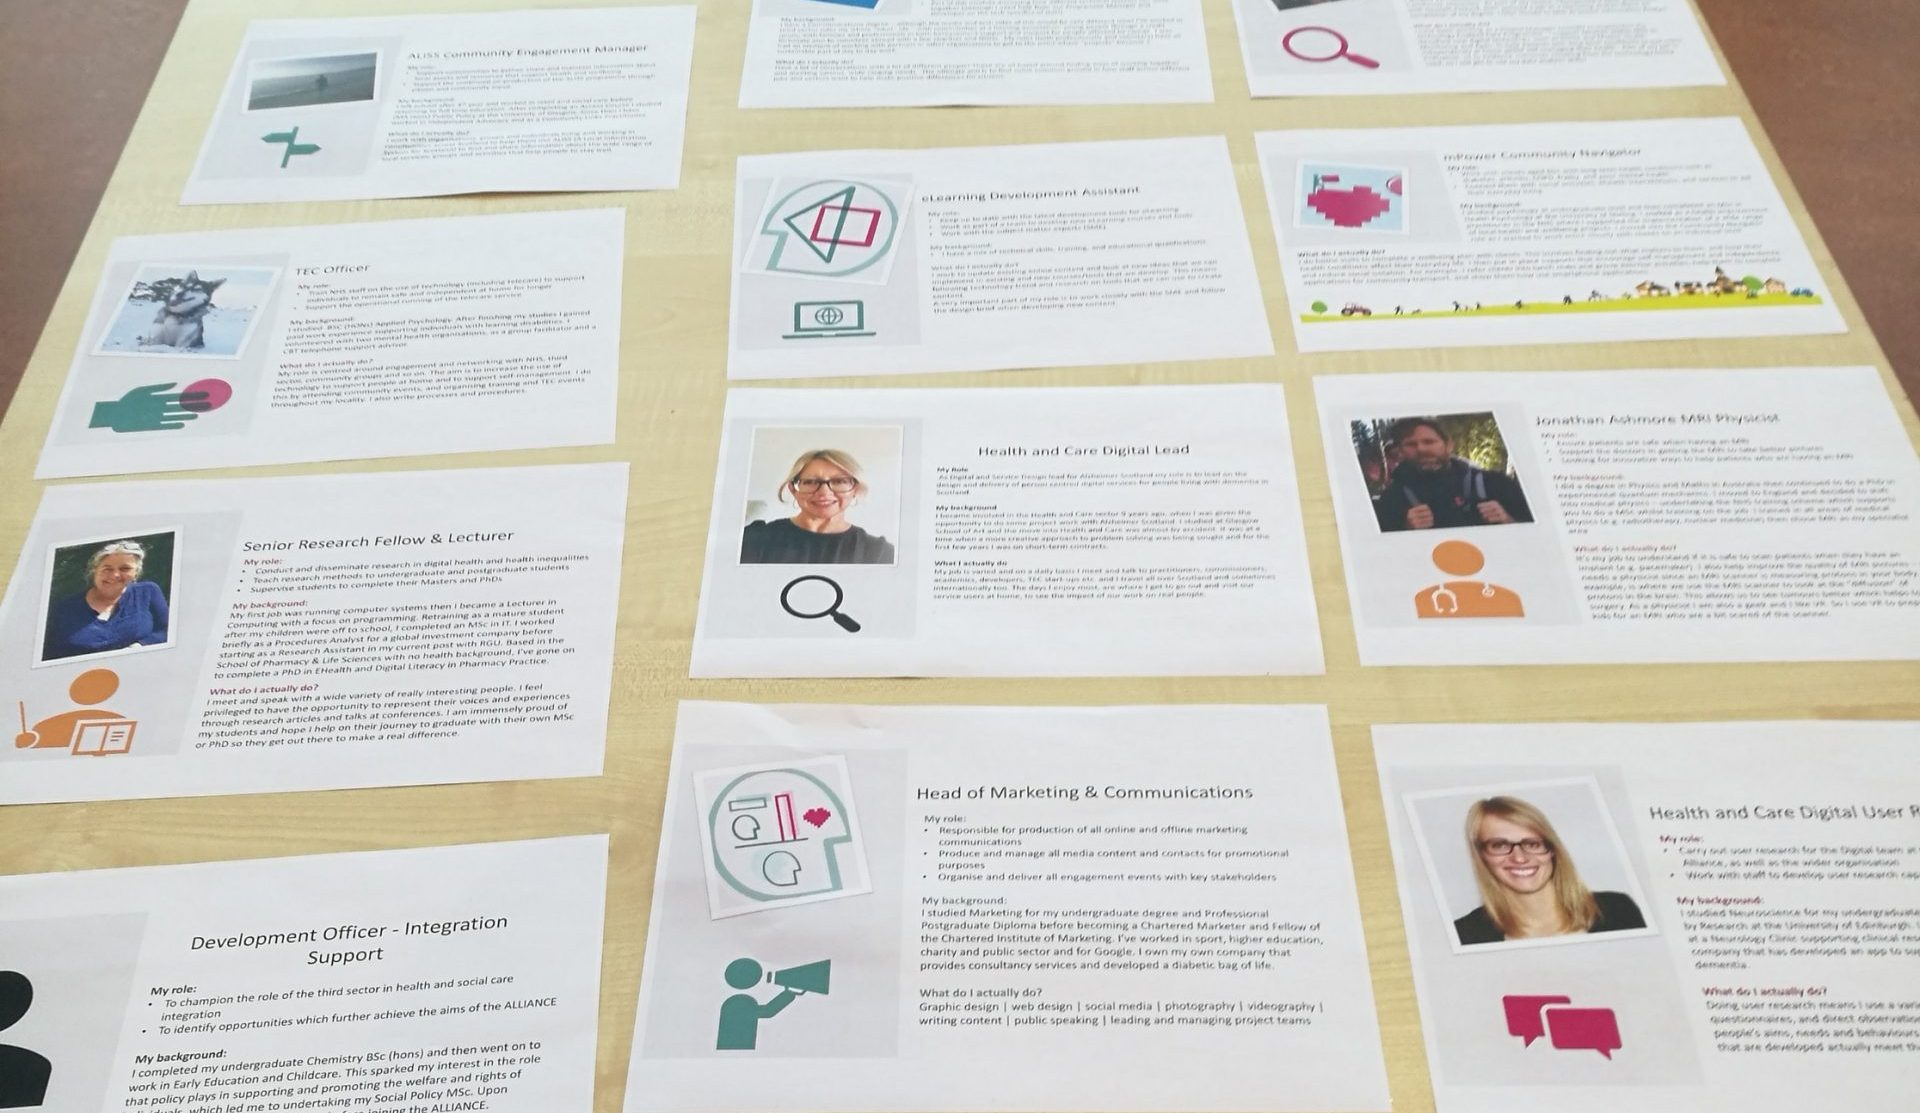 Image of various job profiles laid out on a table